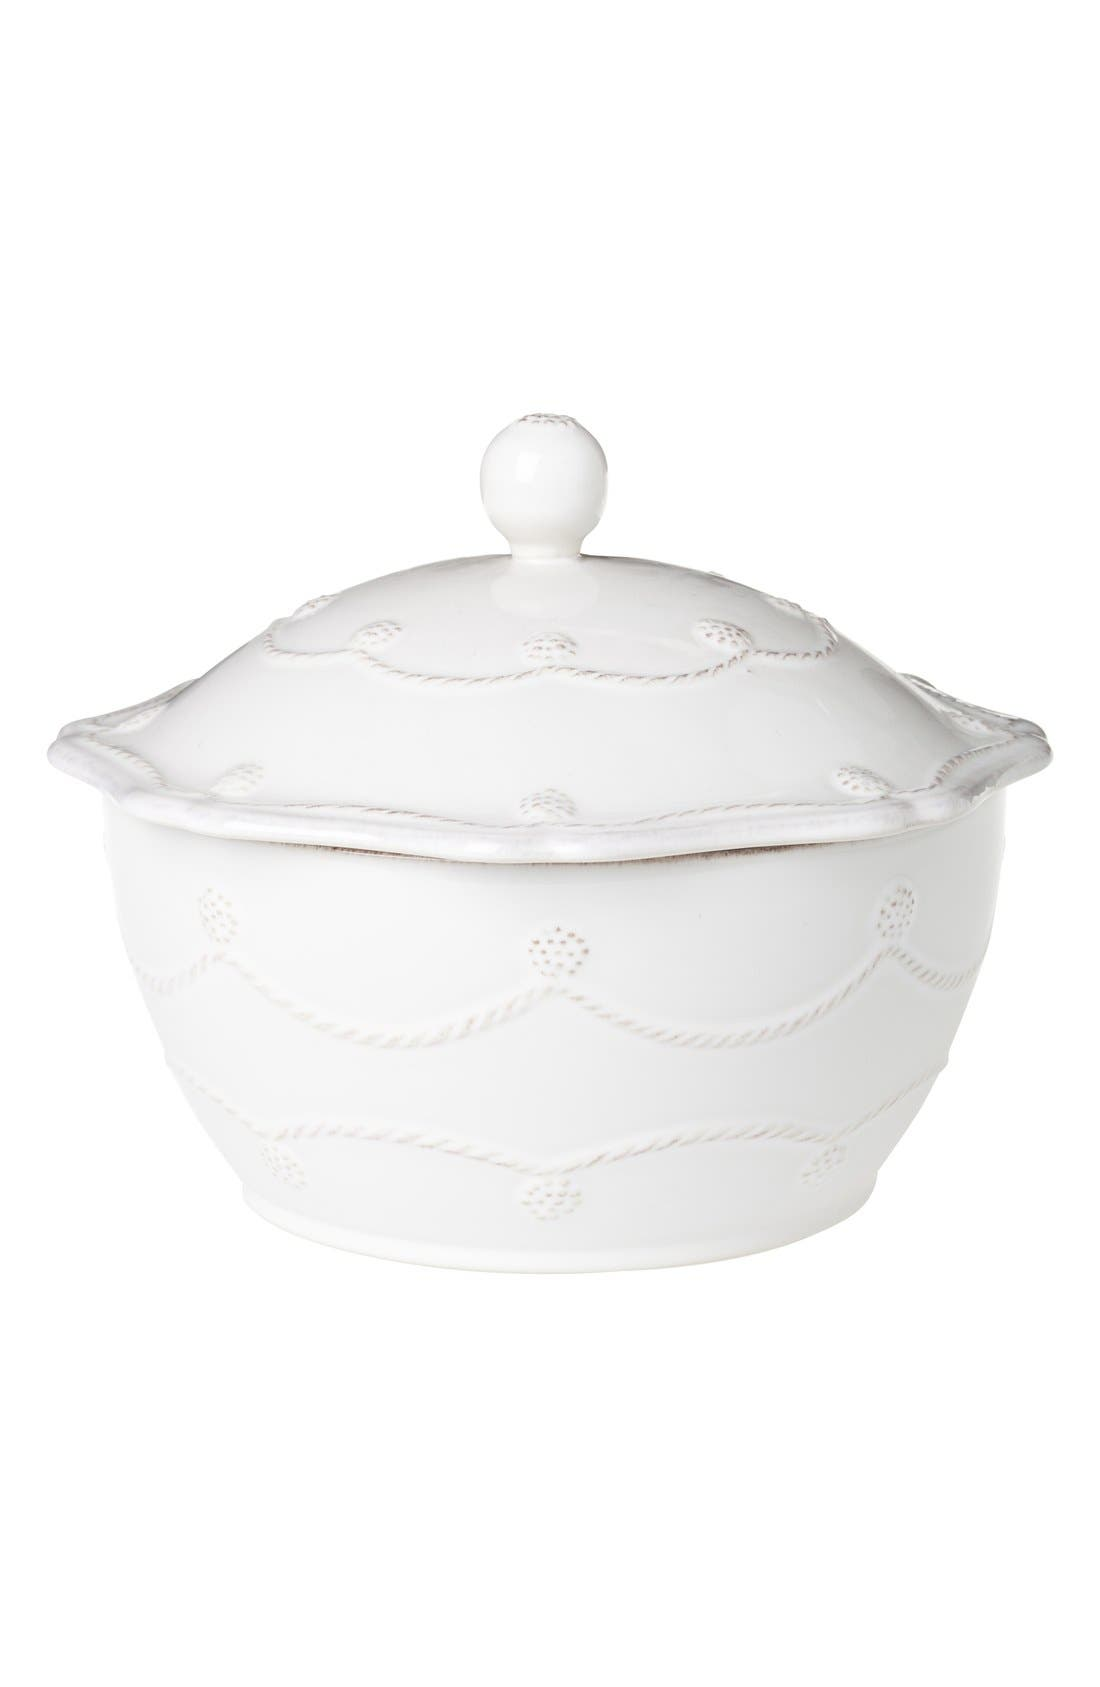 'Berry and Thread' Casserole Dish with Lid,                             Main thumbnail 1, color,                             100